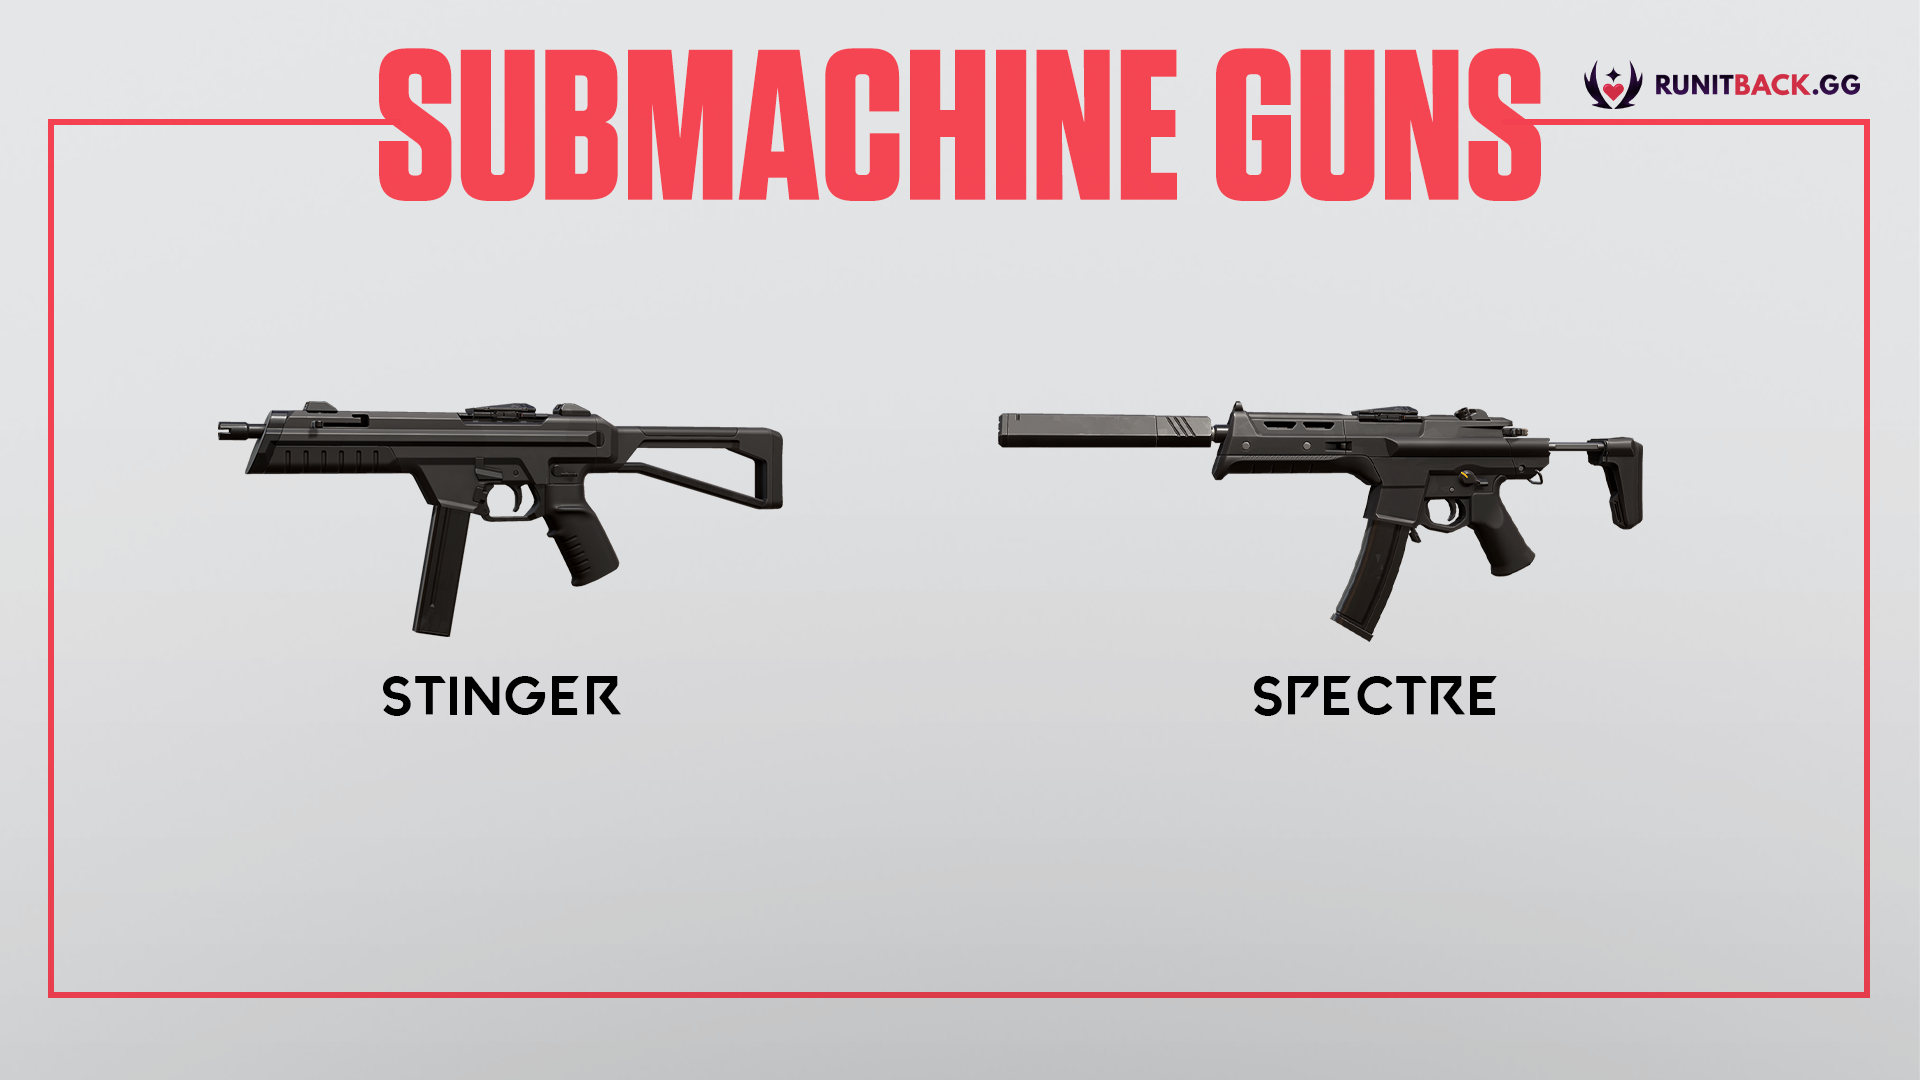 Valorant Weapon Guide: Submachine Guns (SMGs)